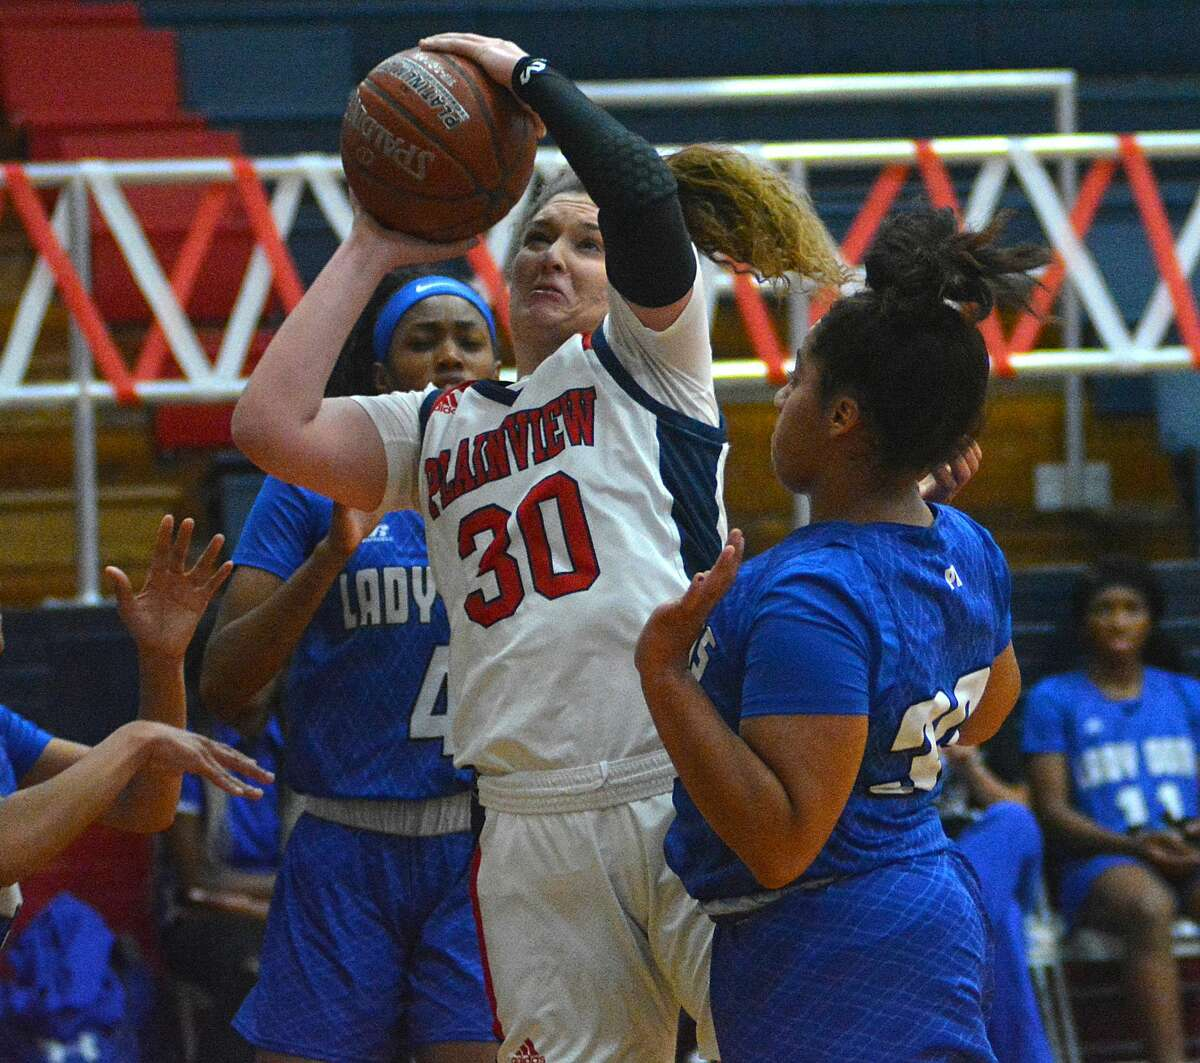 Plainview's Kylie Bennett puts in the shot between Amarillo Palo Duro defenders Sh'heneci Matthews (4) and Leyla Wright during their District 3-5A girls basketball game on Tuesday in the Dog House.